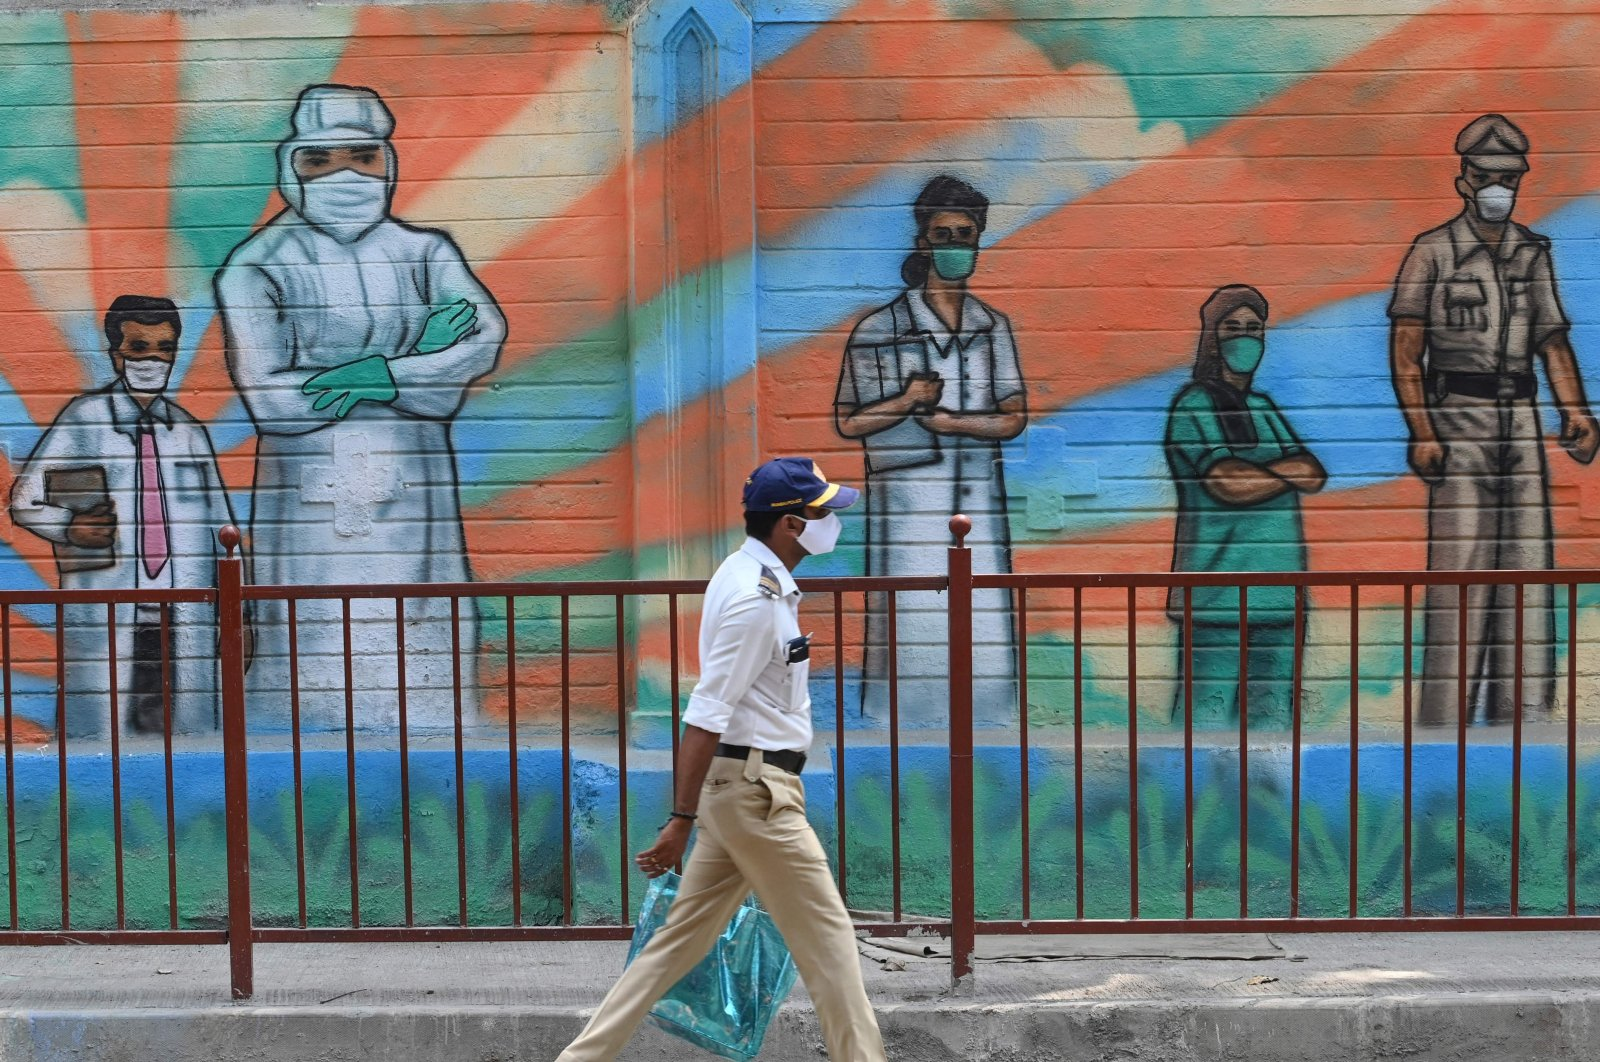 A police officer walks past a mural depicting frontline COVID-19 warriors, in Mumbai, India, on March 21, 2021. (AFP Photo)